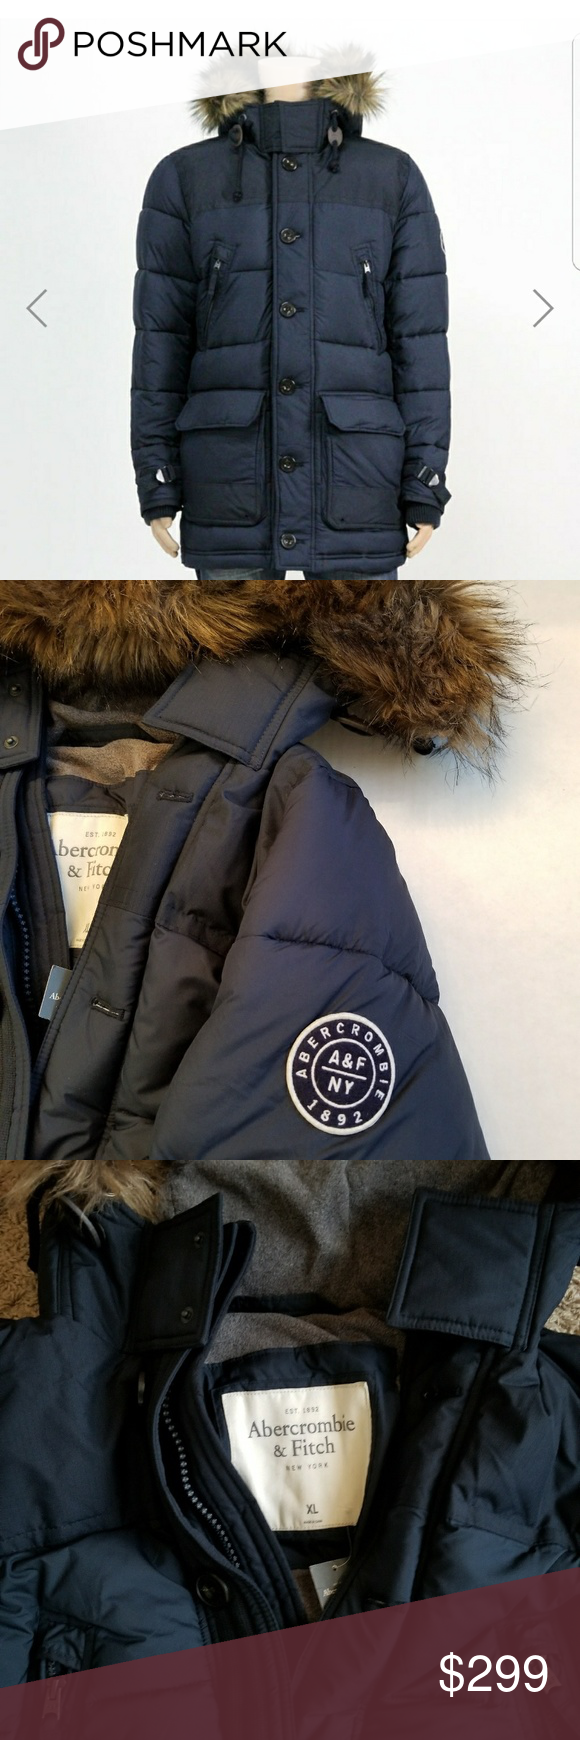 Abercrombie Fitch Hooded Puffer Jacket Clothes Design Abercrombie And Fitch Jackets Fashion [ 1740 x 580 Pixel ]